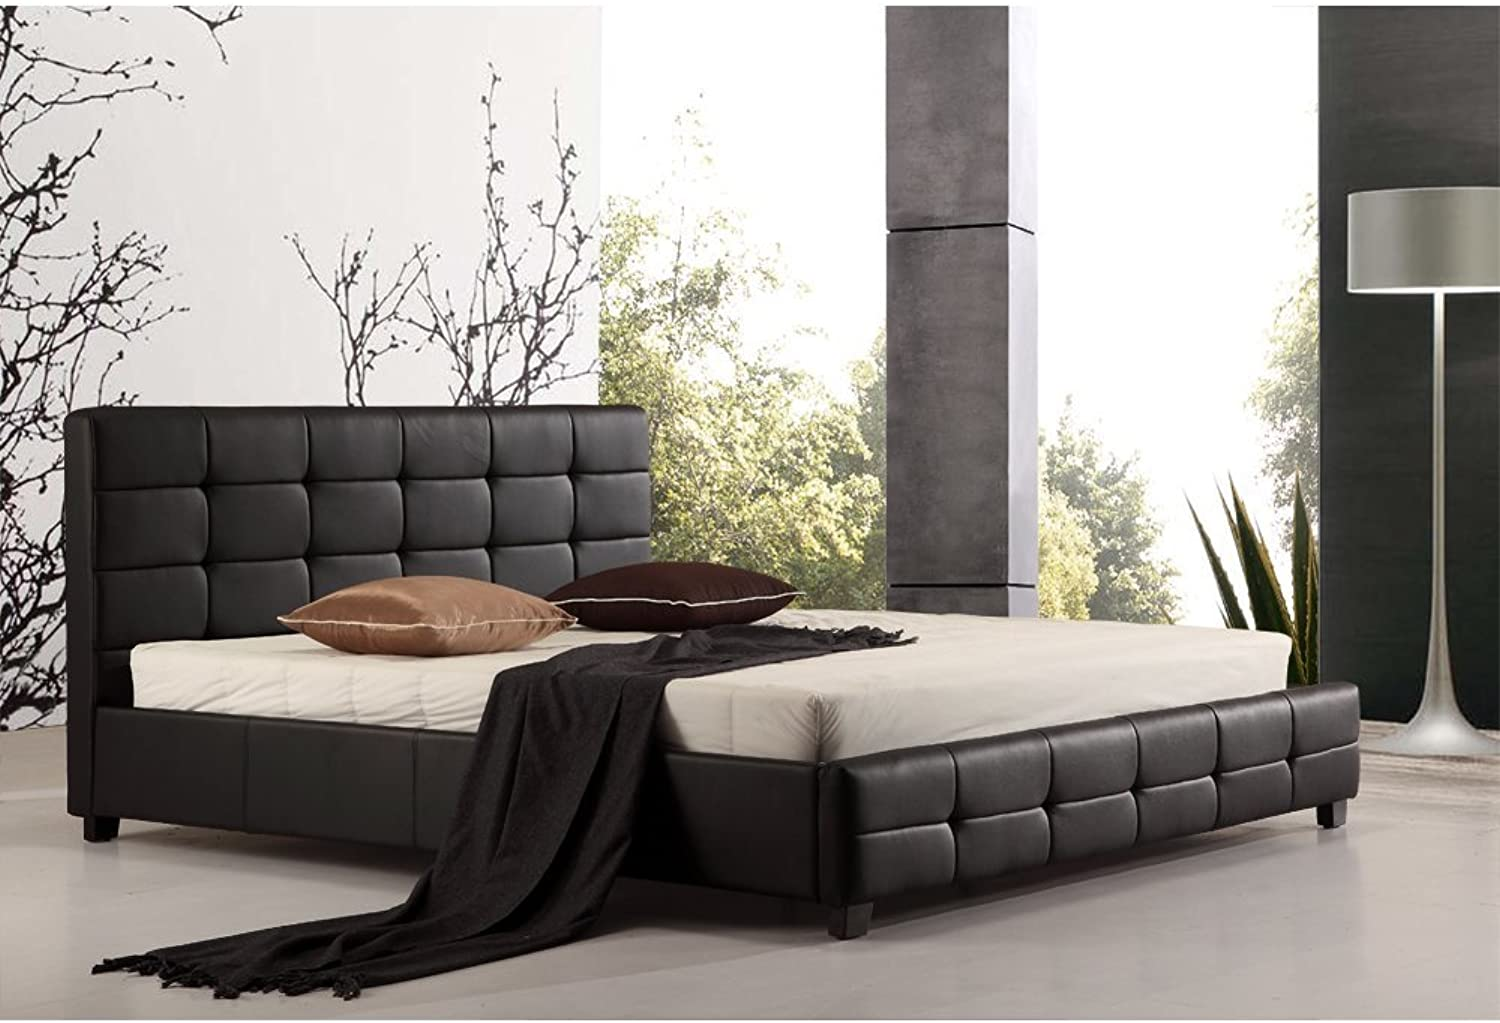 King PU Leather Deluxe Bed Frame and Headboard - 206cm x 192cm Black